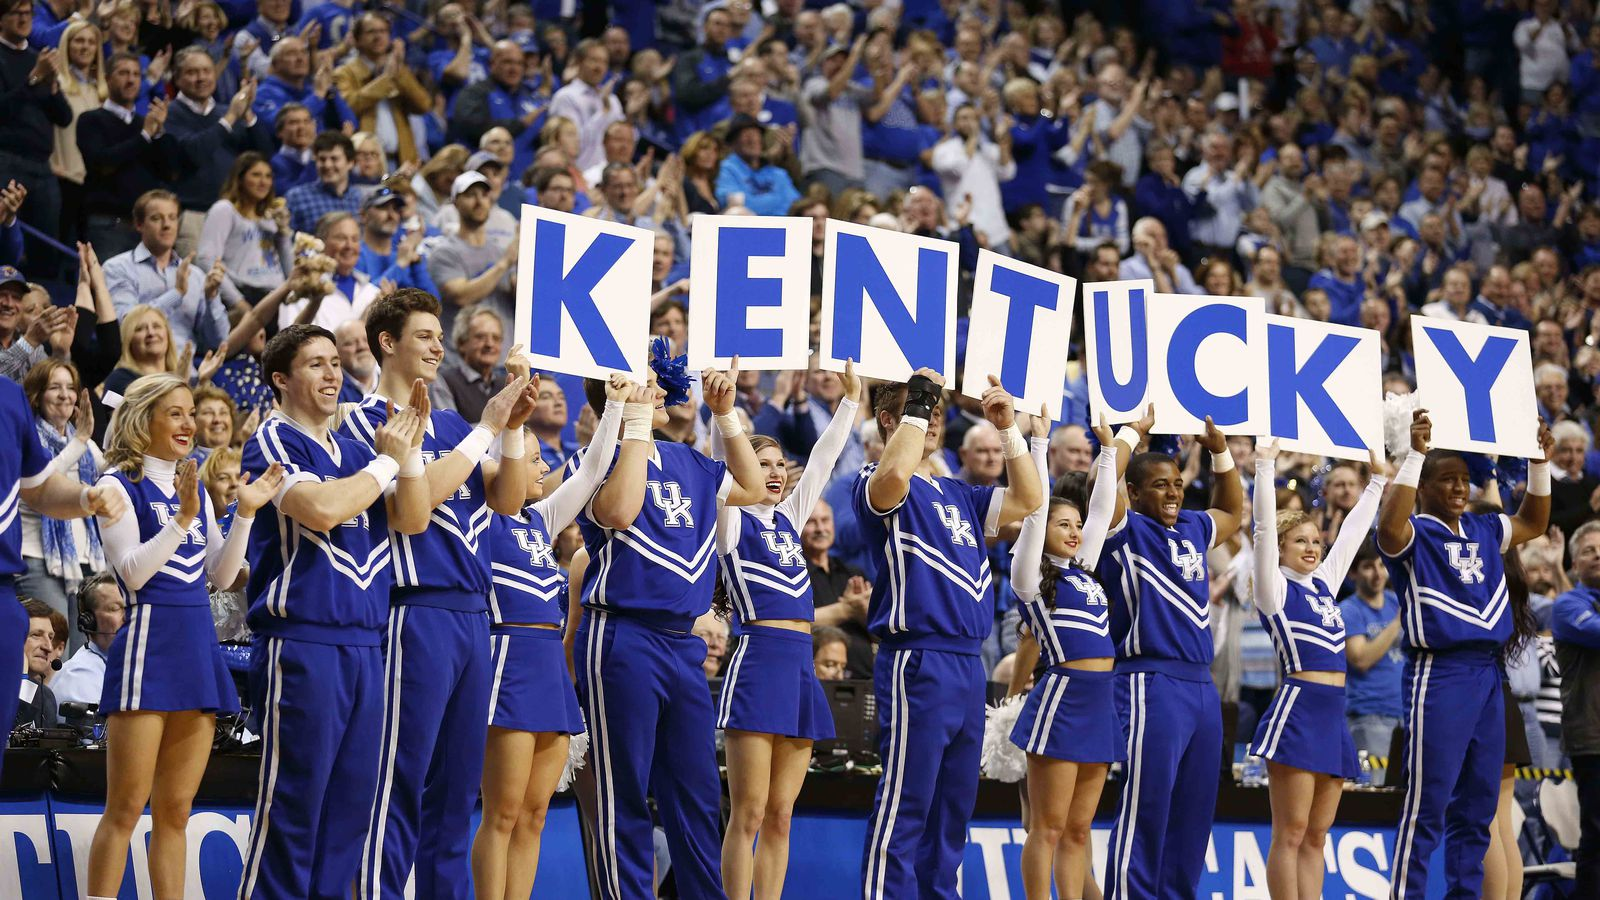 Kentucky Wildcats Basketball: Kentucky Basketball, The Prime Directive And The Haters